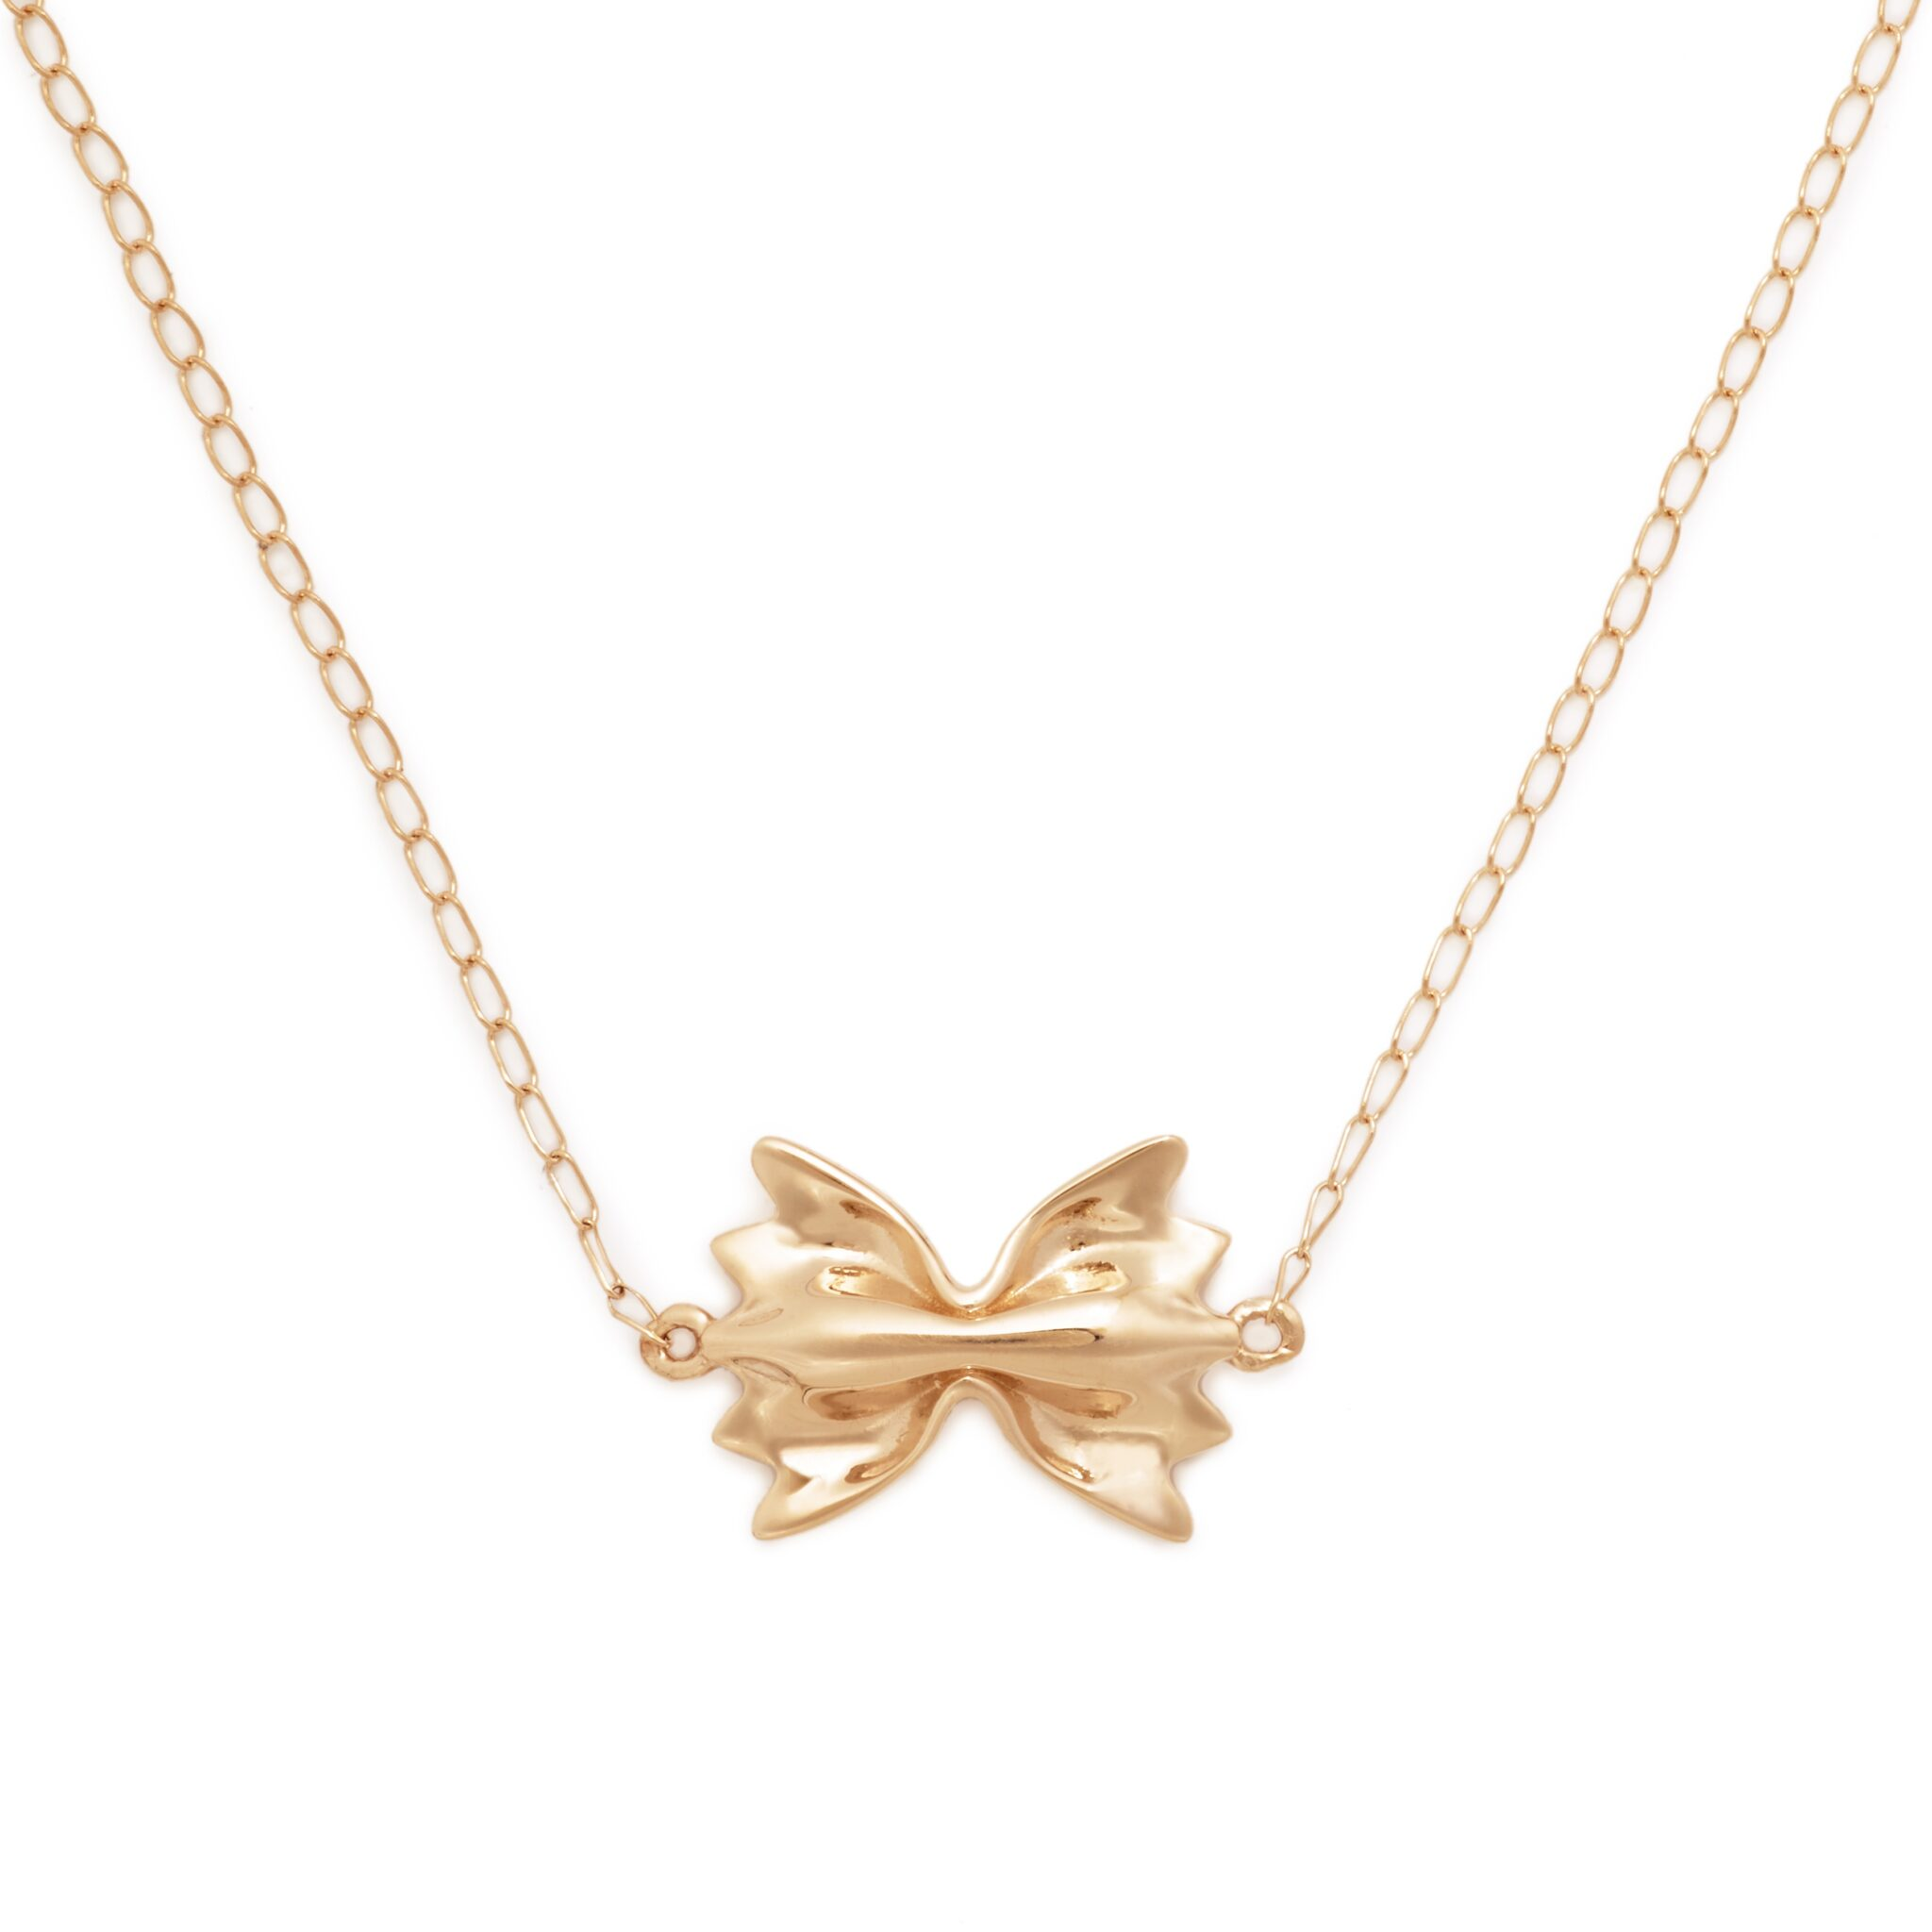 Gold Plated Mini Farfalle Necklace